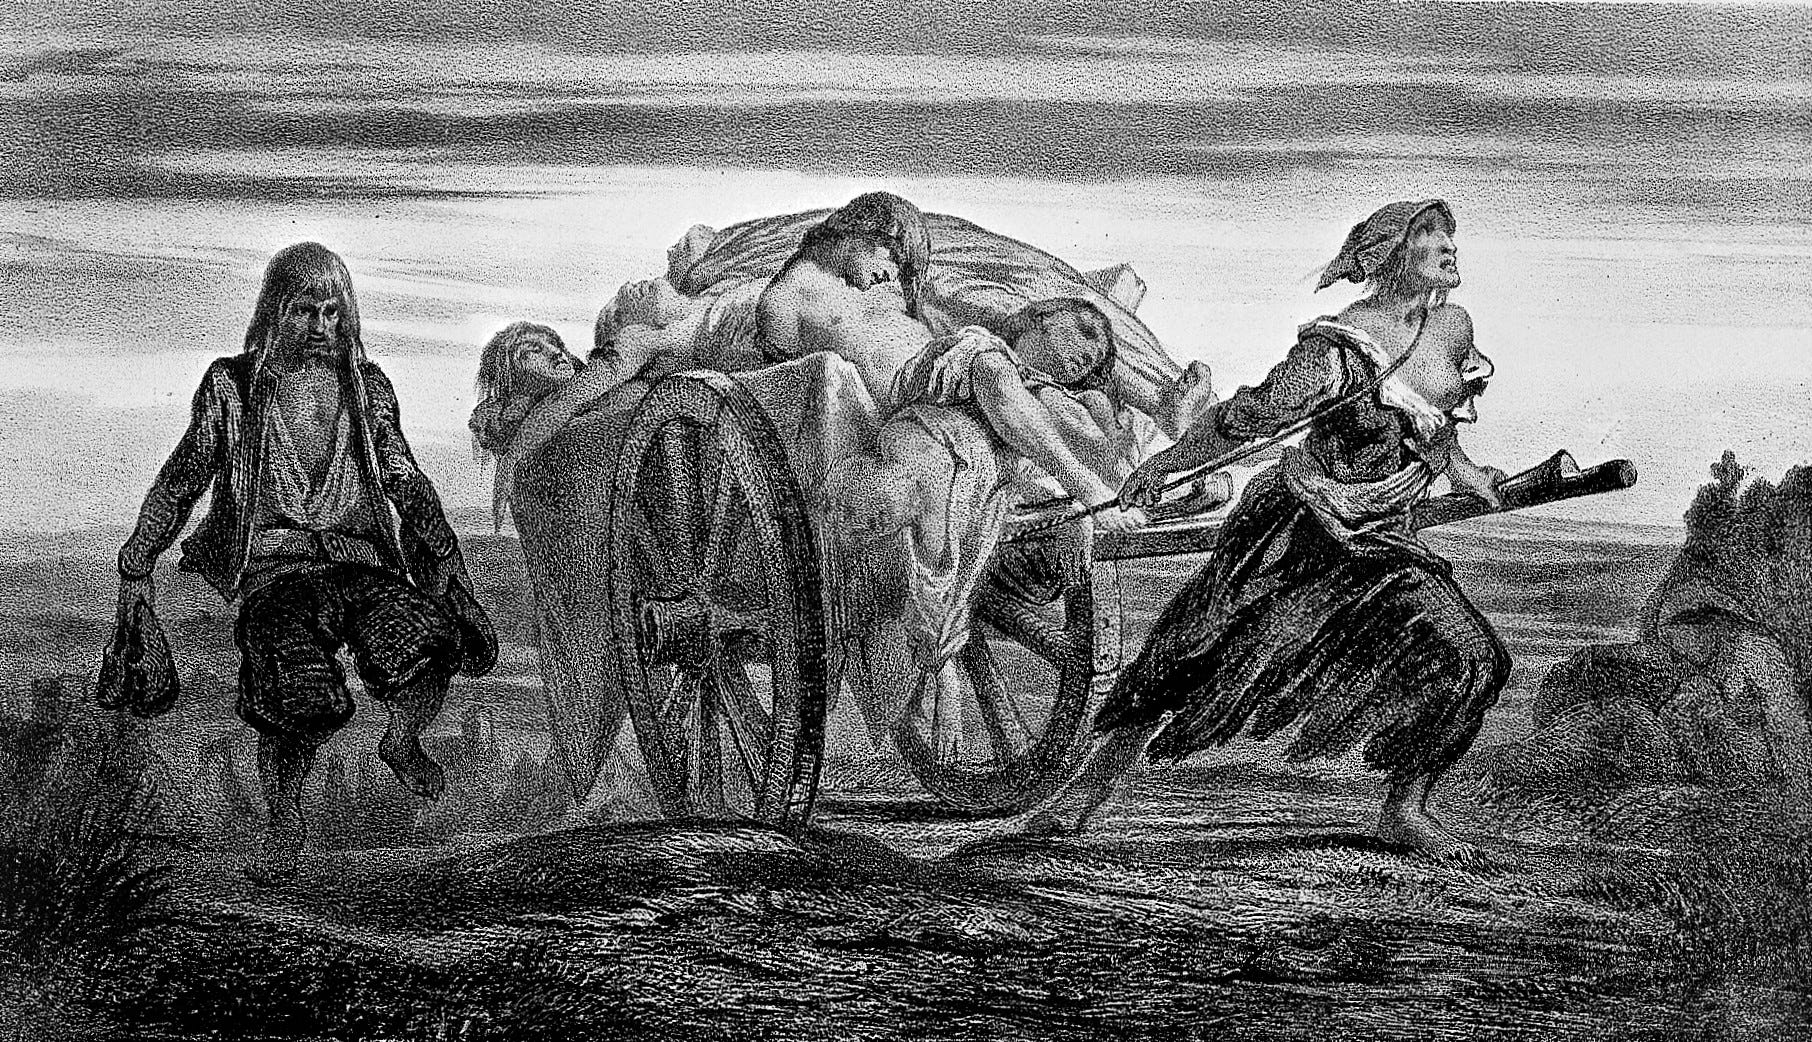 'Carting the Dead' depicts people who died from the Black Plague in the 1300s. (Jean-Pierre Moynet/Wikimedia)